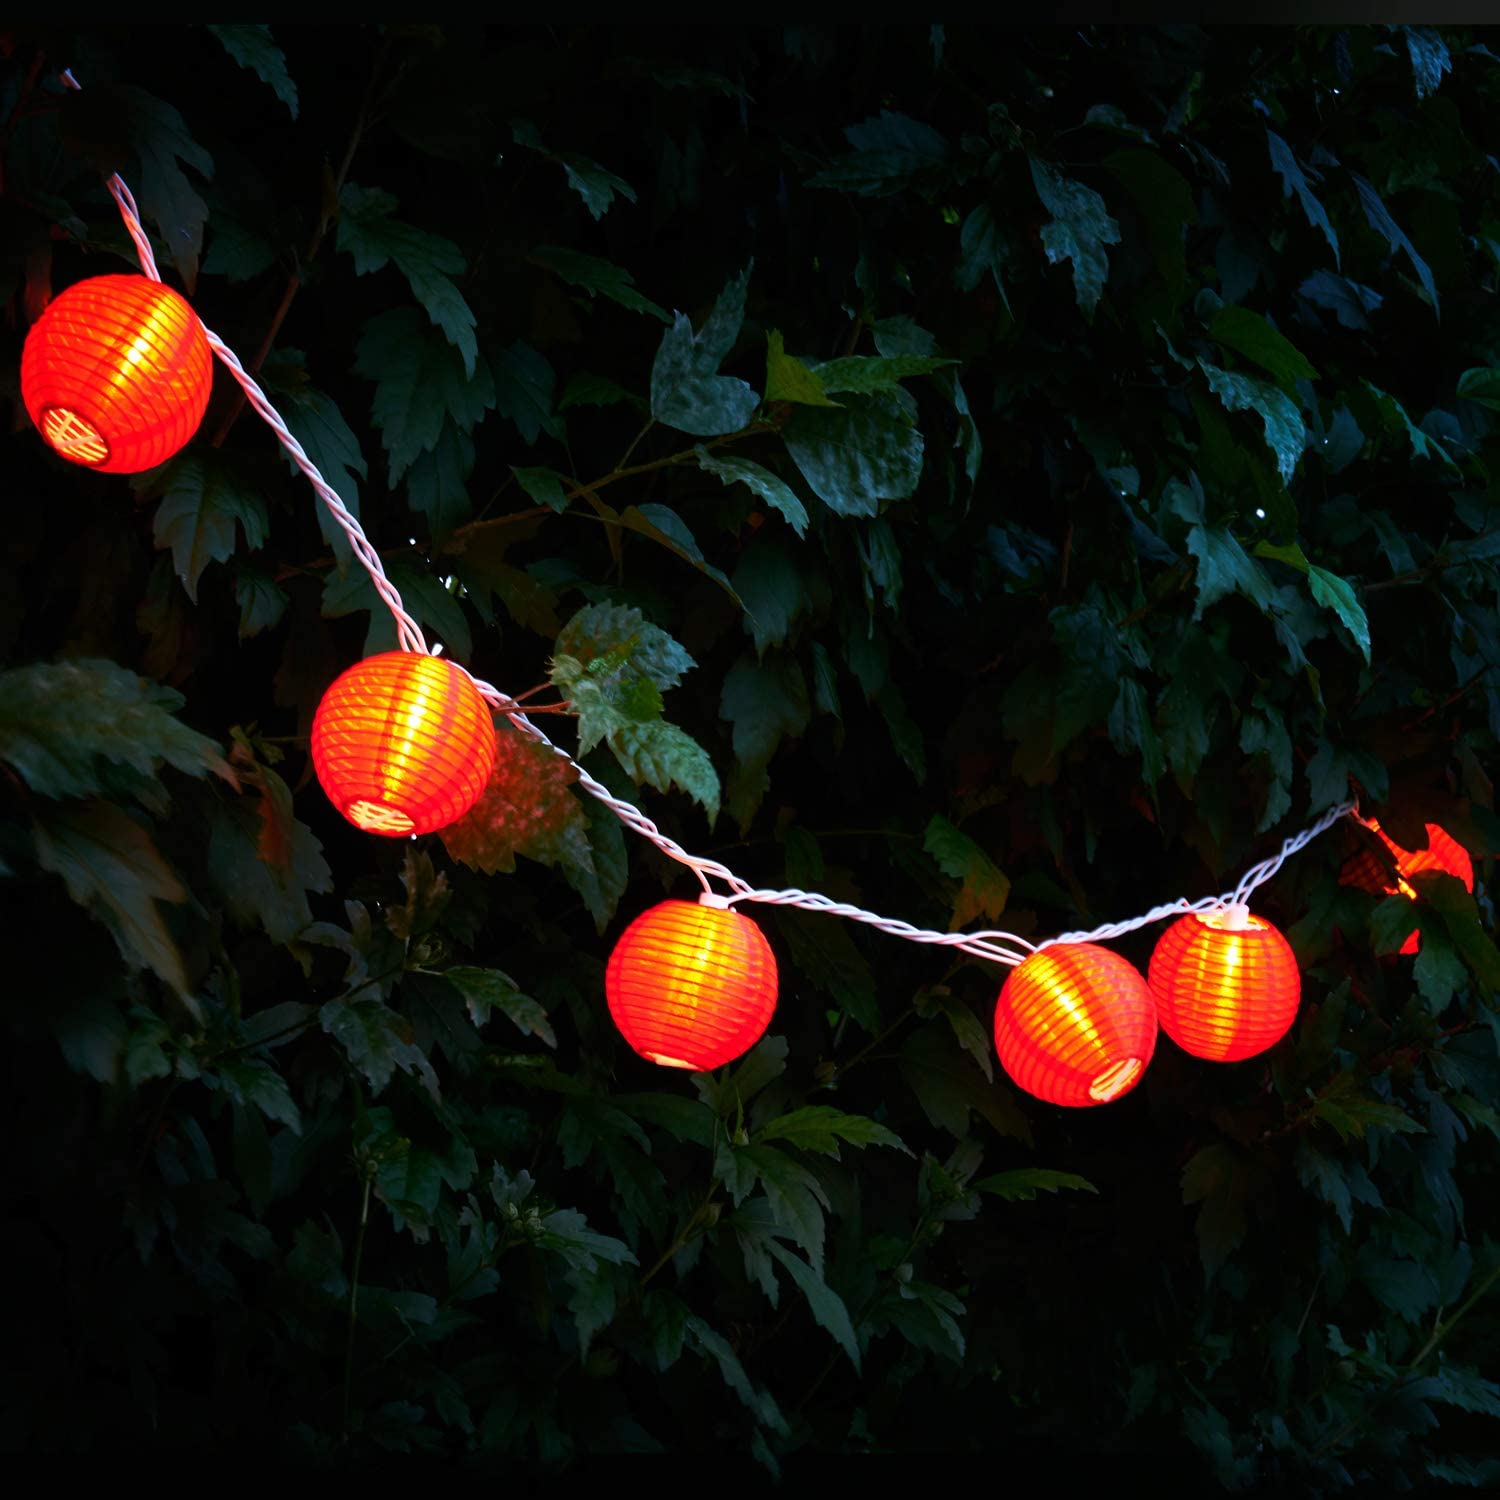 Red Lantern String Lights - 10 Nylon Hanging Mini Lanterns with Warm White Bulbs, 7 Feet Long, Waterproof for Indoor / Outdoor Lighting, Plug in, Connect up to 25 Strands